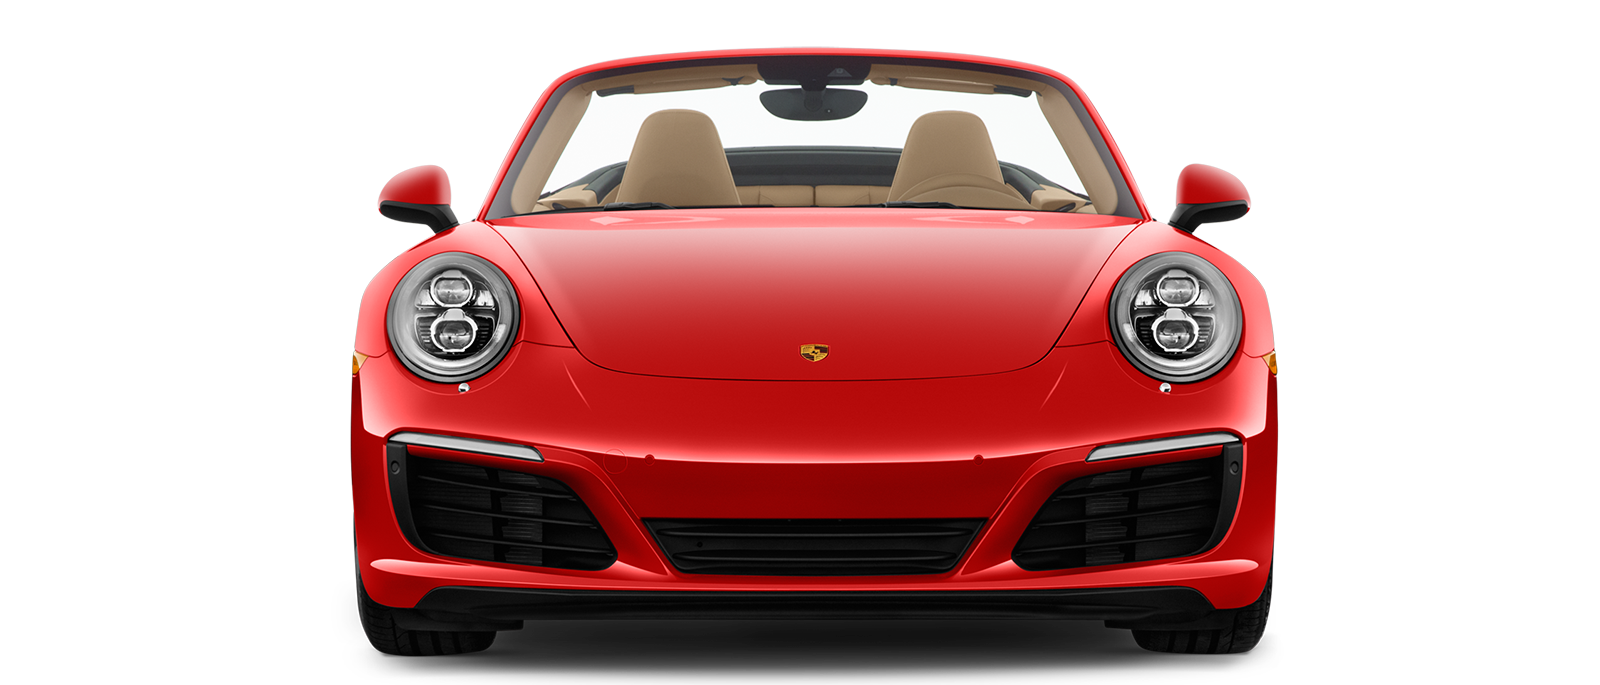 porsche 911 cabriolet car rental exotic car collection. Black Bedroom Furniture Sets. Home Design Ideas